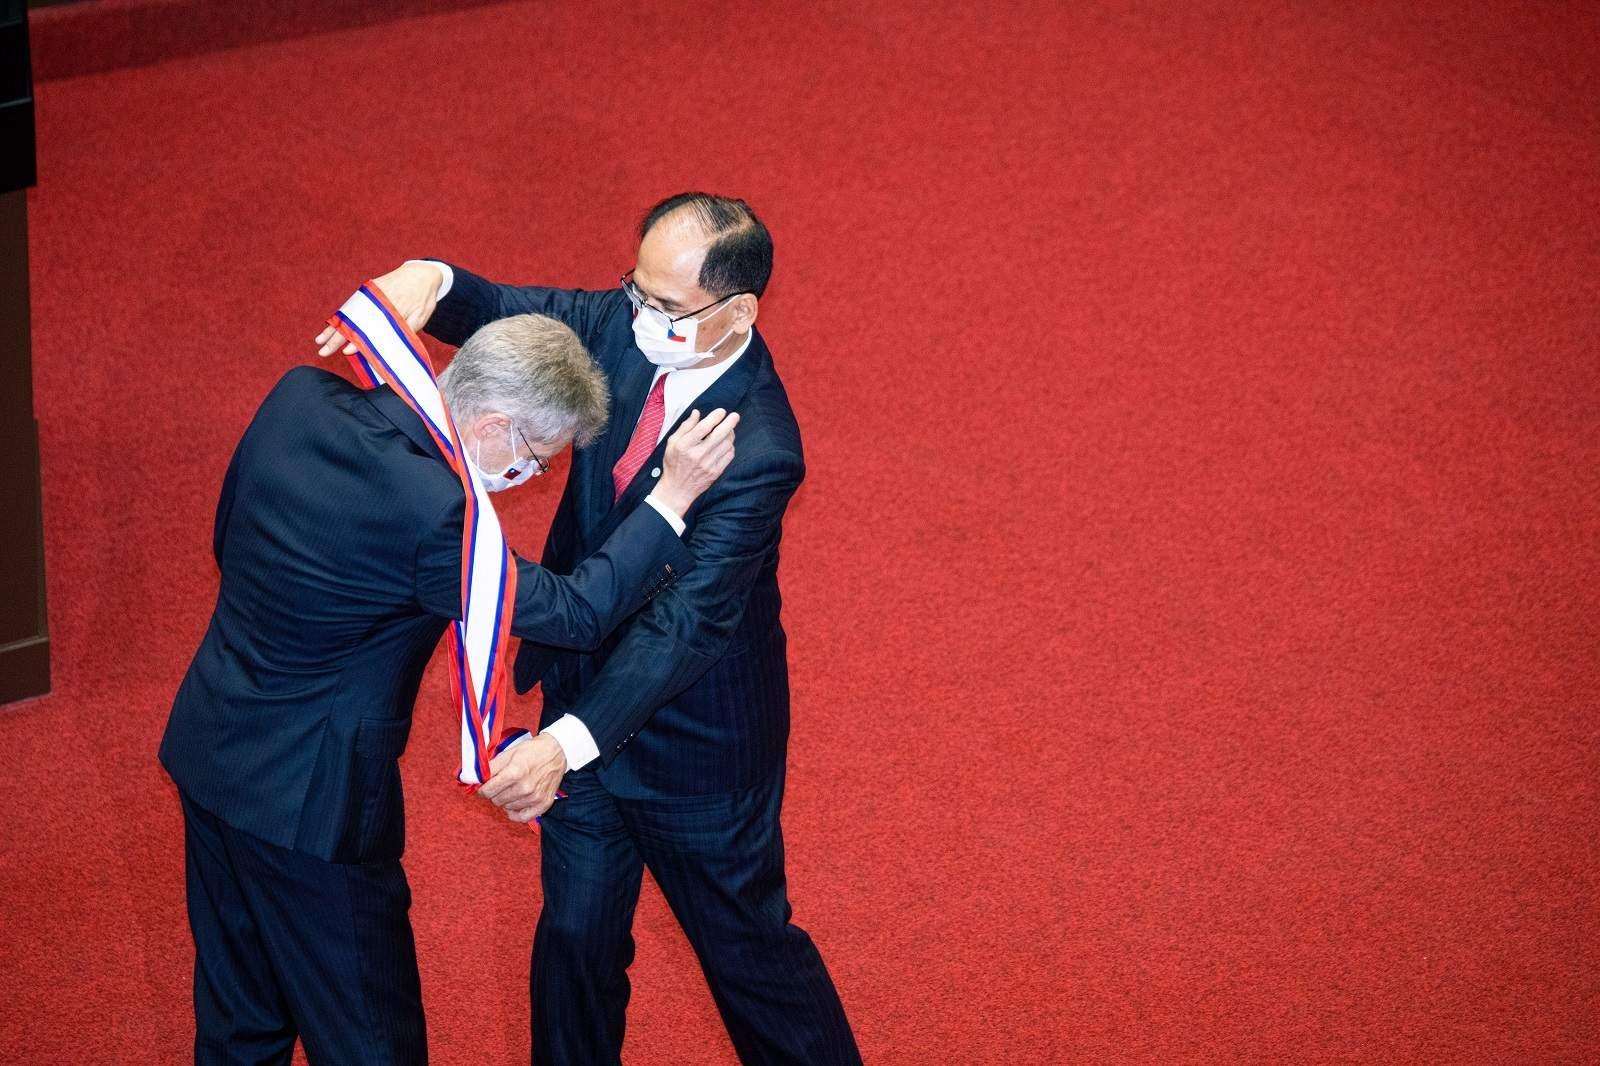 """The visit of Czech Senate President Miloš Vystrčil (L) to Taipei in September 2020, against the wishes of his president, caused Beijing to announce that he would pay a """"heavy price"""" (Annabelle Chih/SOPA Images/LightRocket via Getty Images)"""